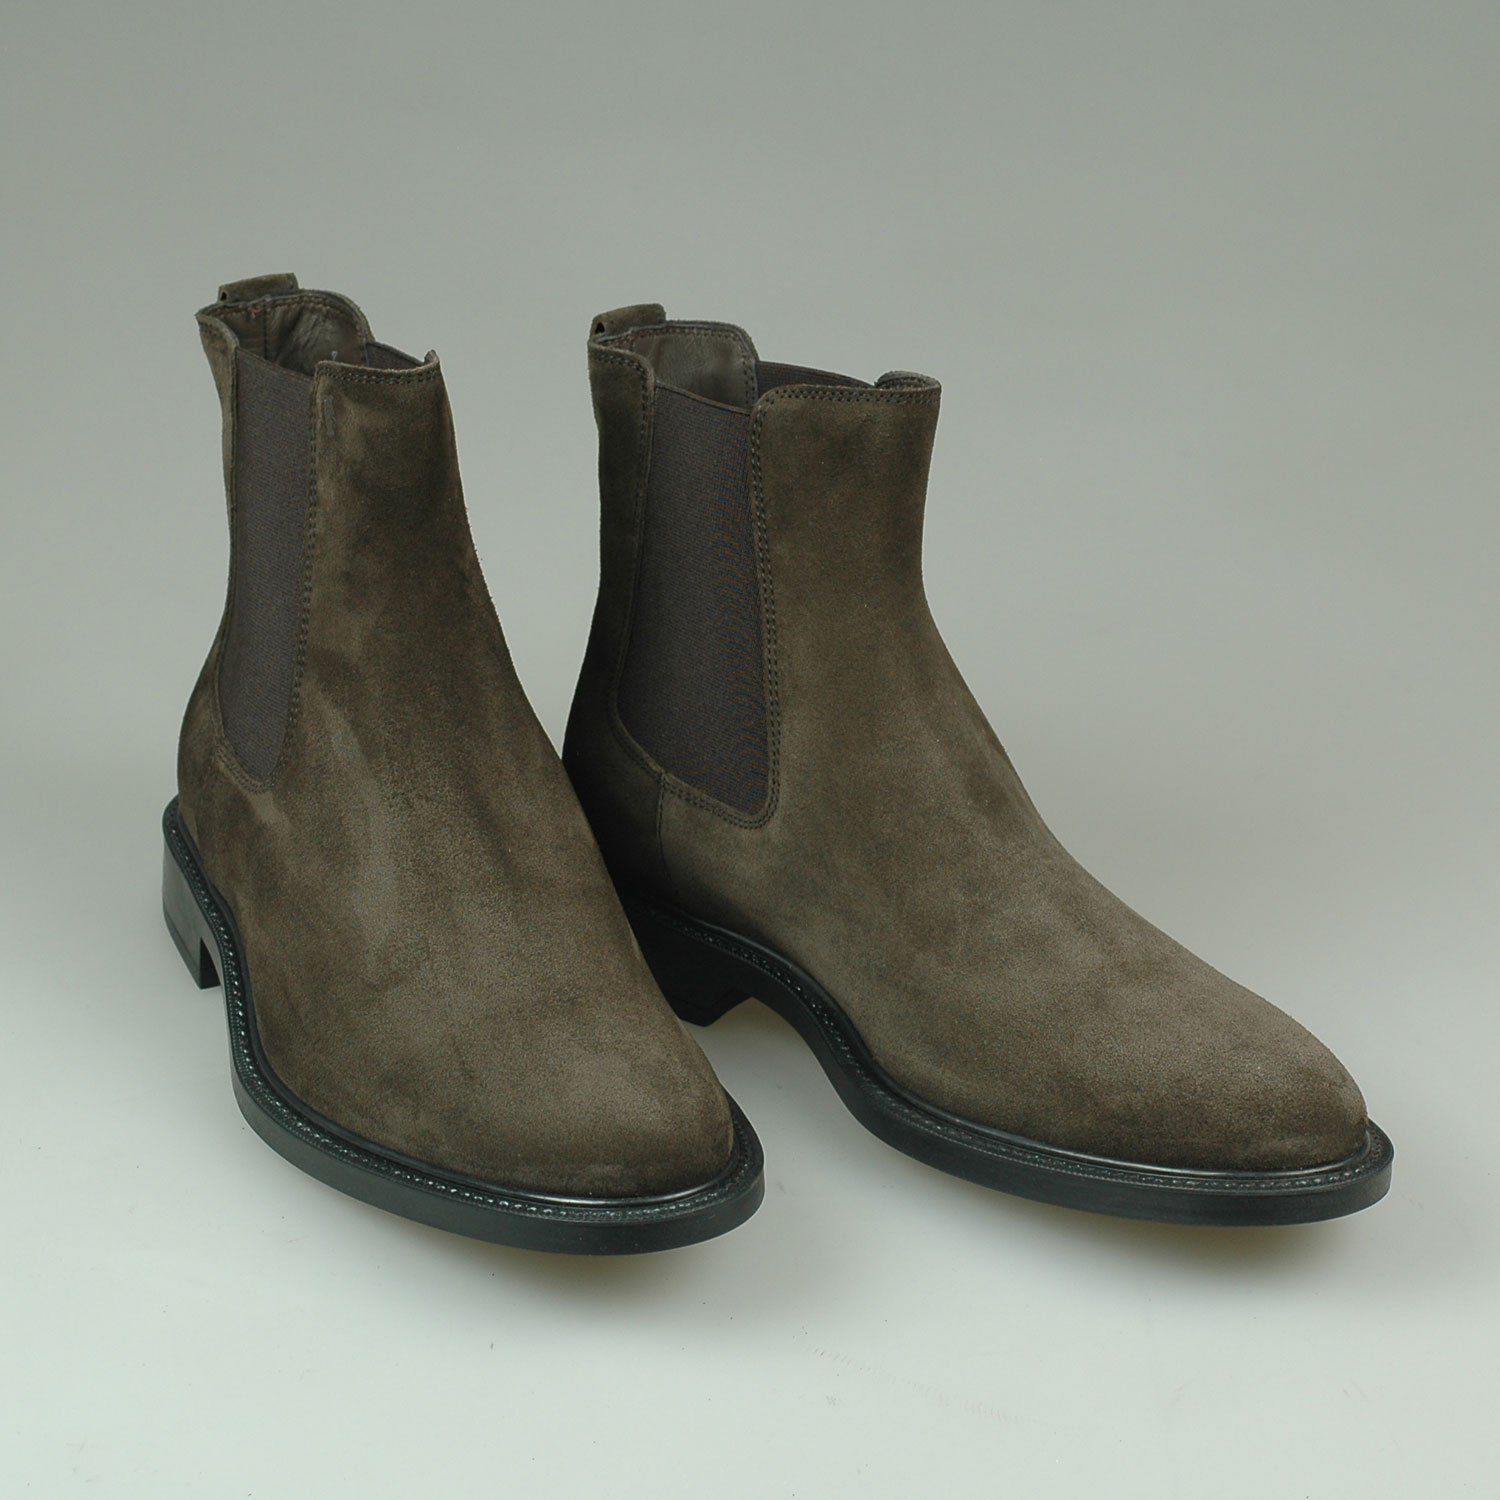 12 Best Chelsea Boots to Wear with Everything | Mens boots